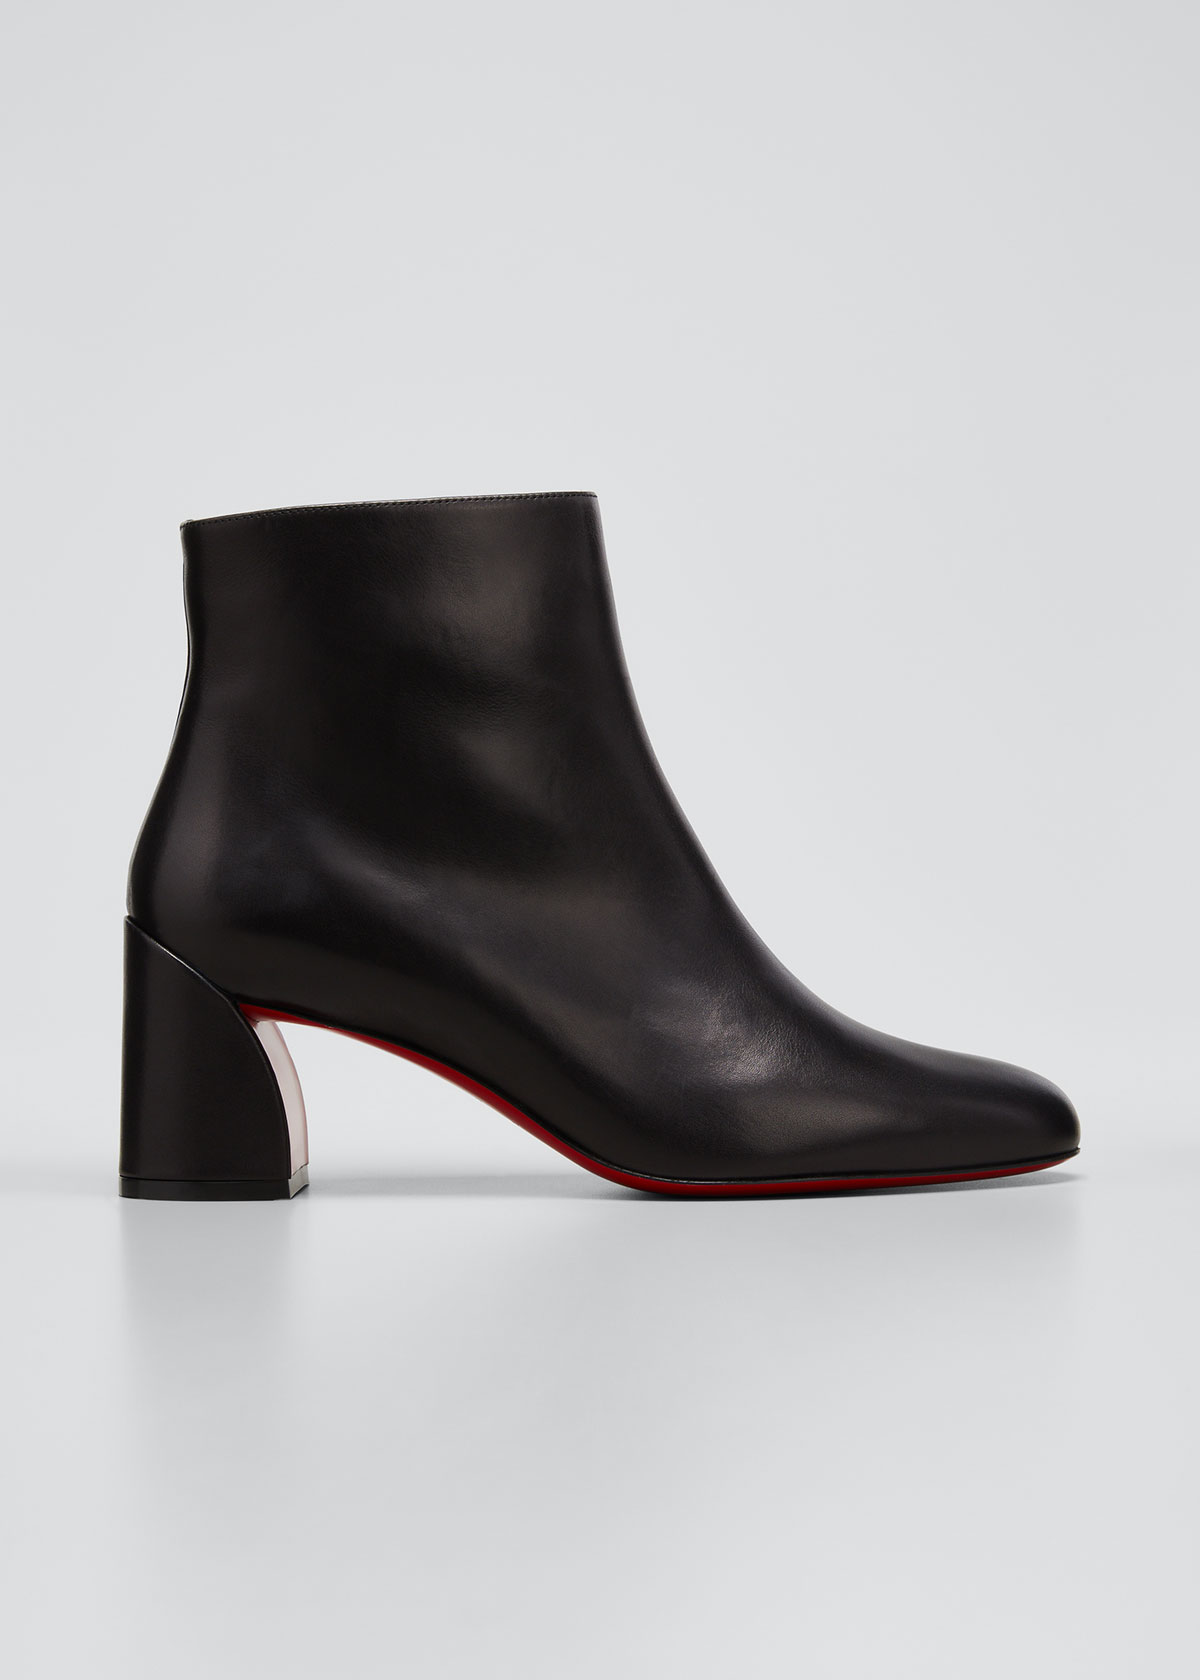 Christian Louboutin Boots TURELA LEATHER SIDE-ZIP RED SOLE BOOTIES